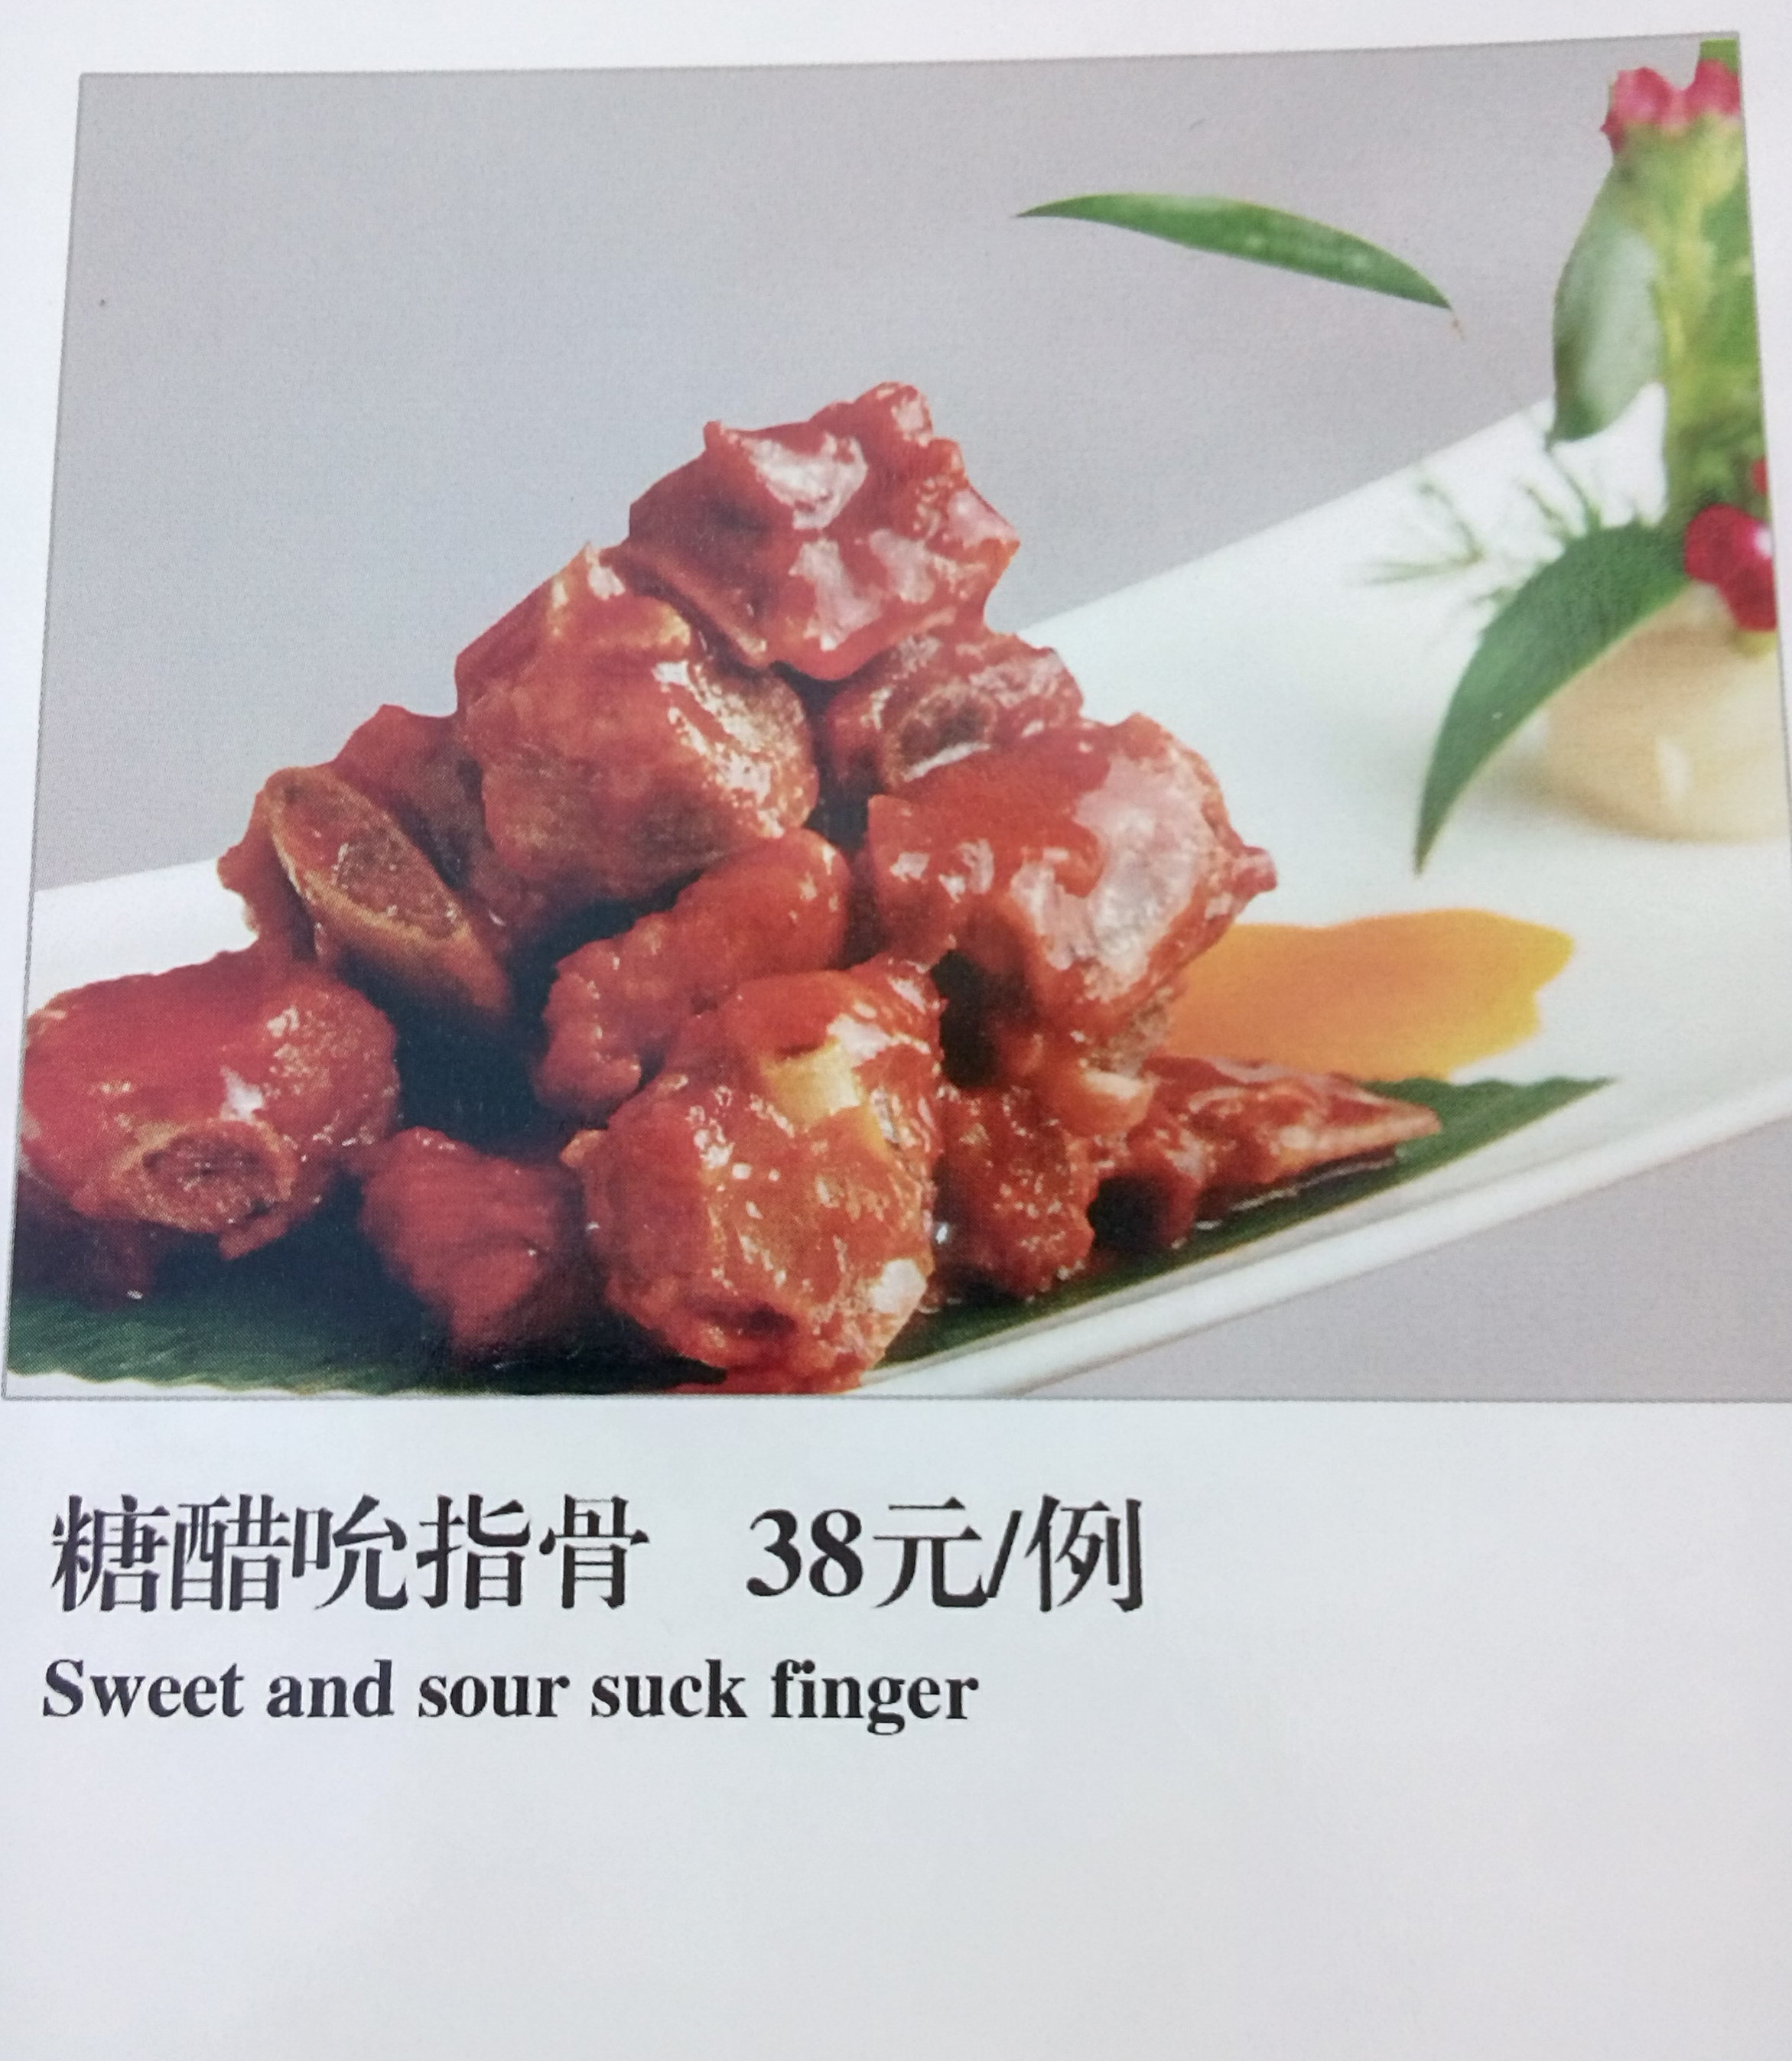 sweet-and-sour-suck-finger-beijing